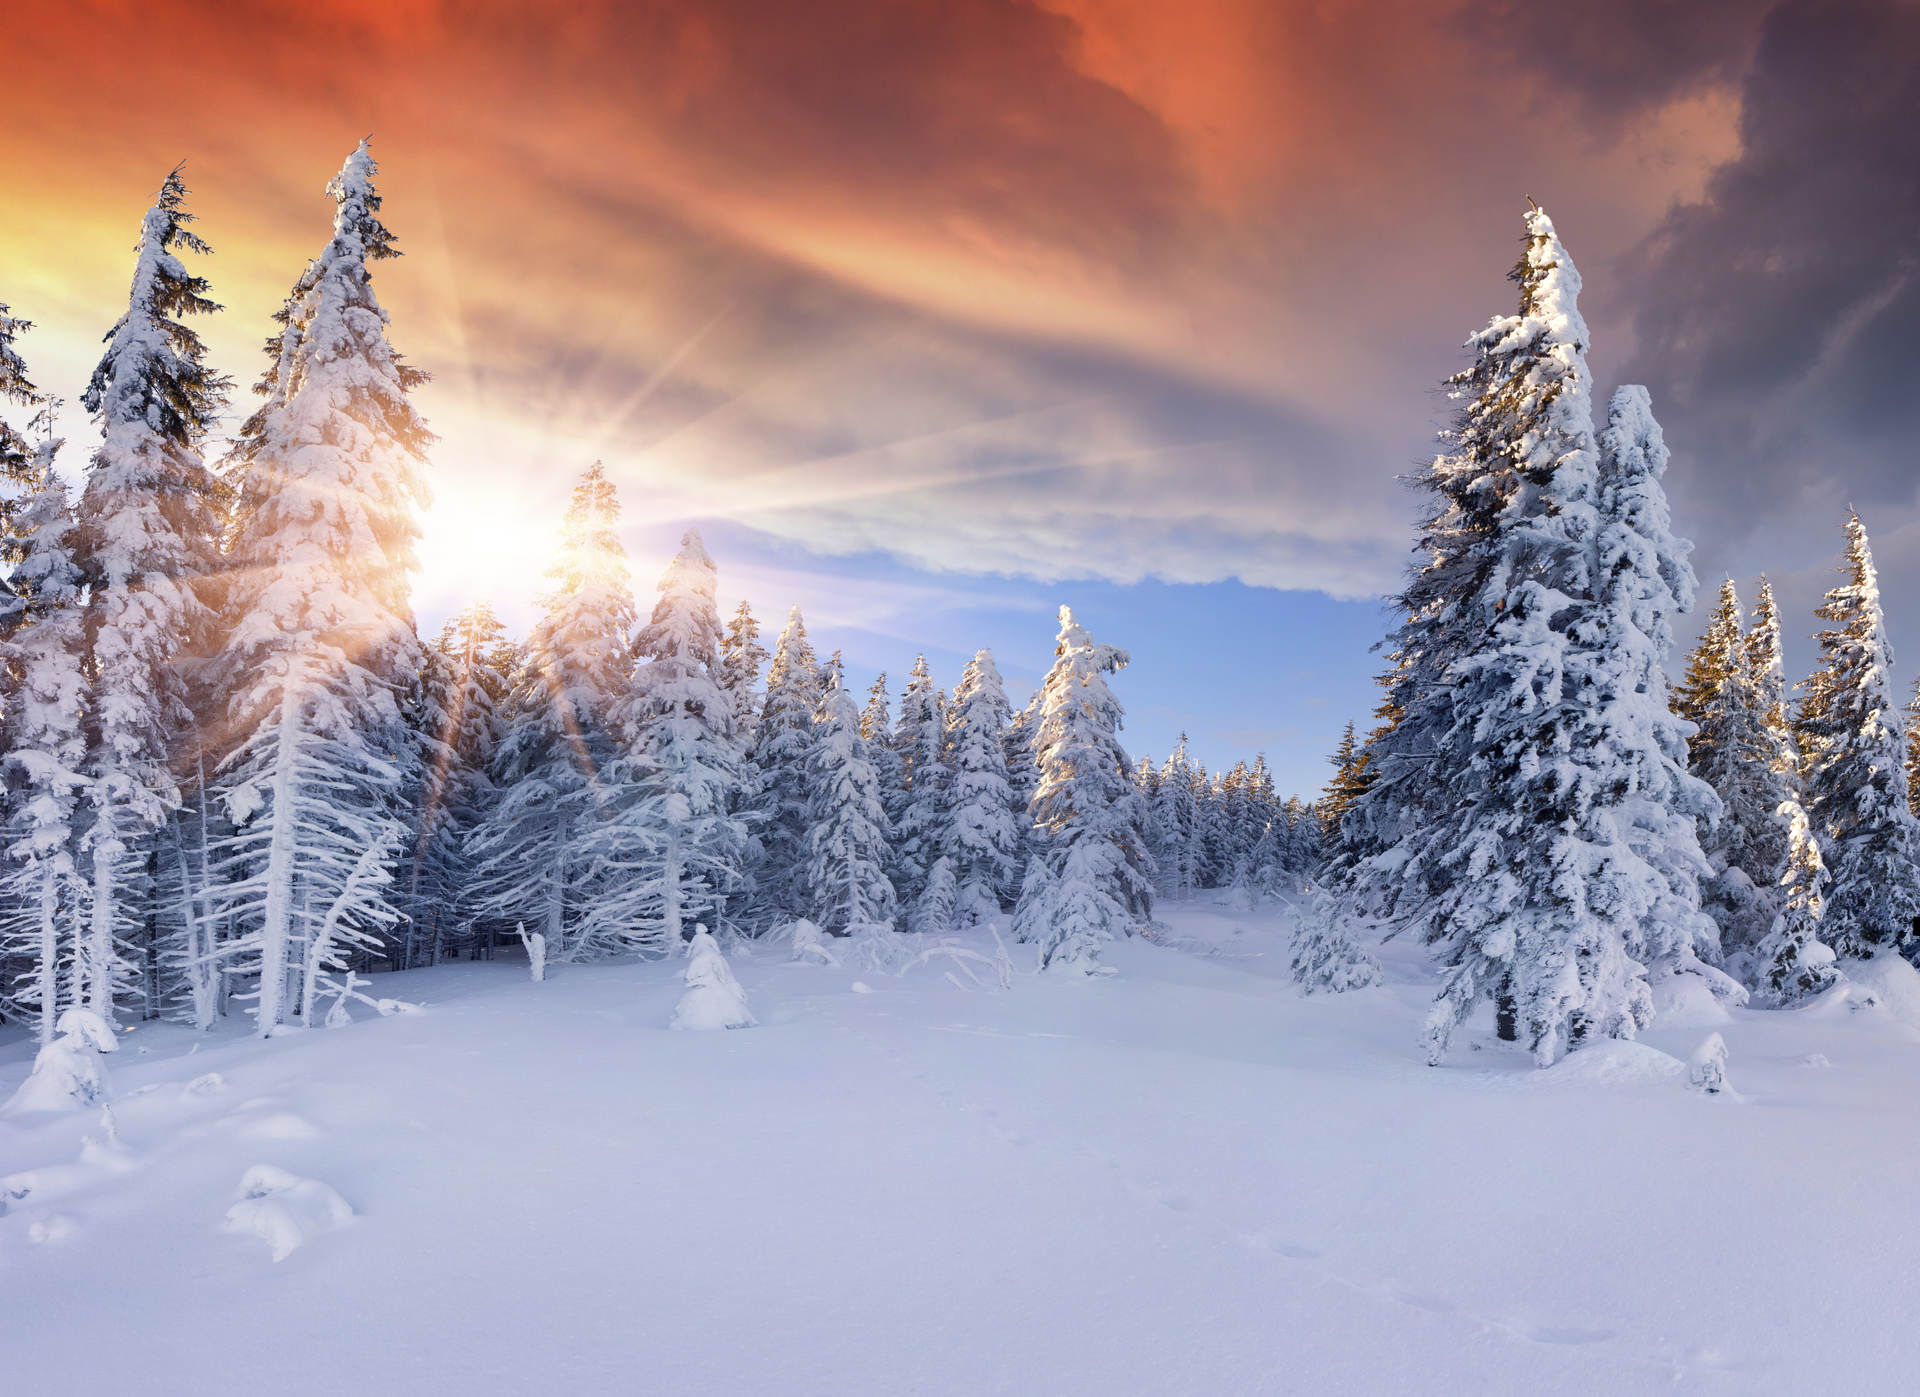 Beautiful winter sunrise in the mountains. Dramatic red sky